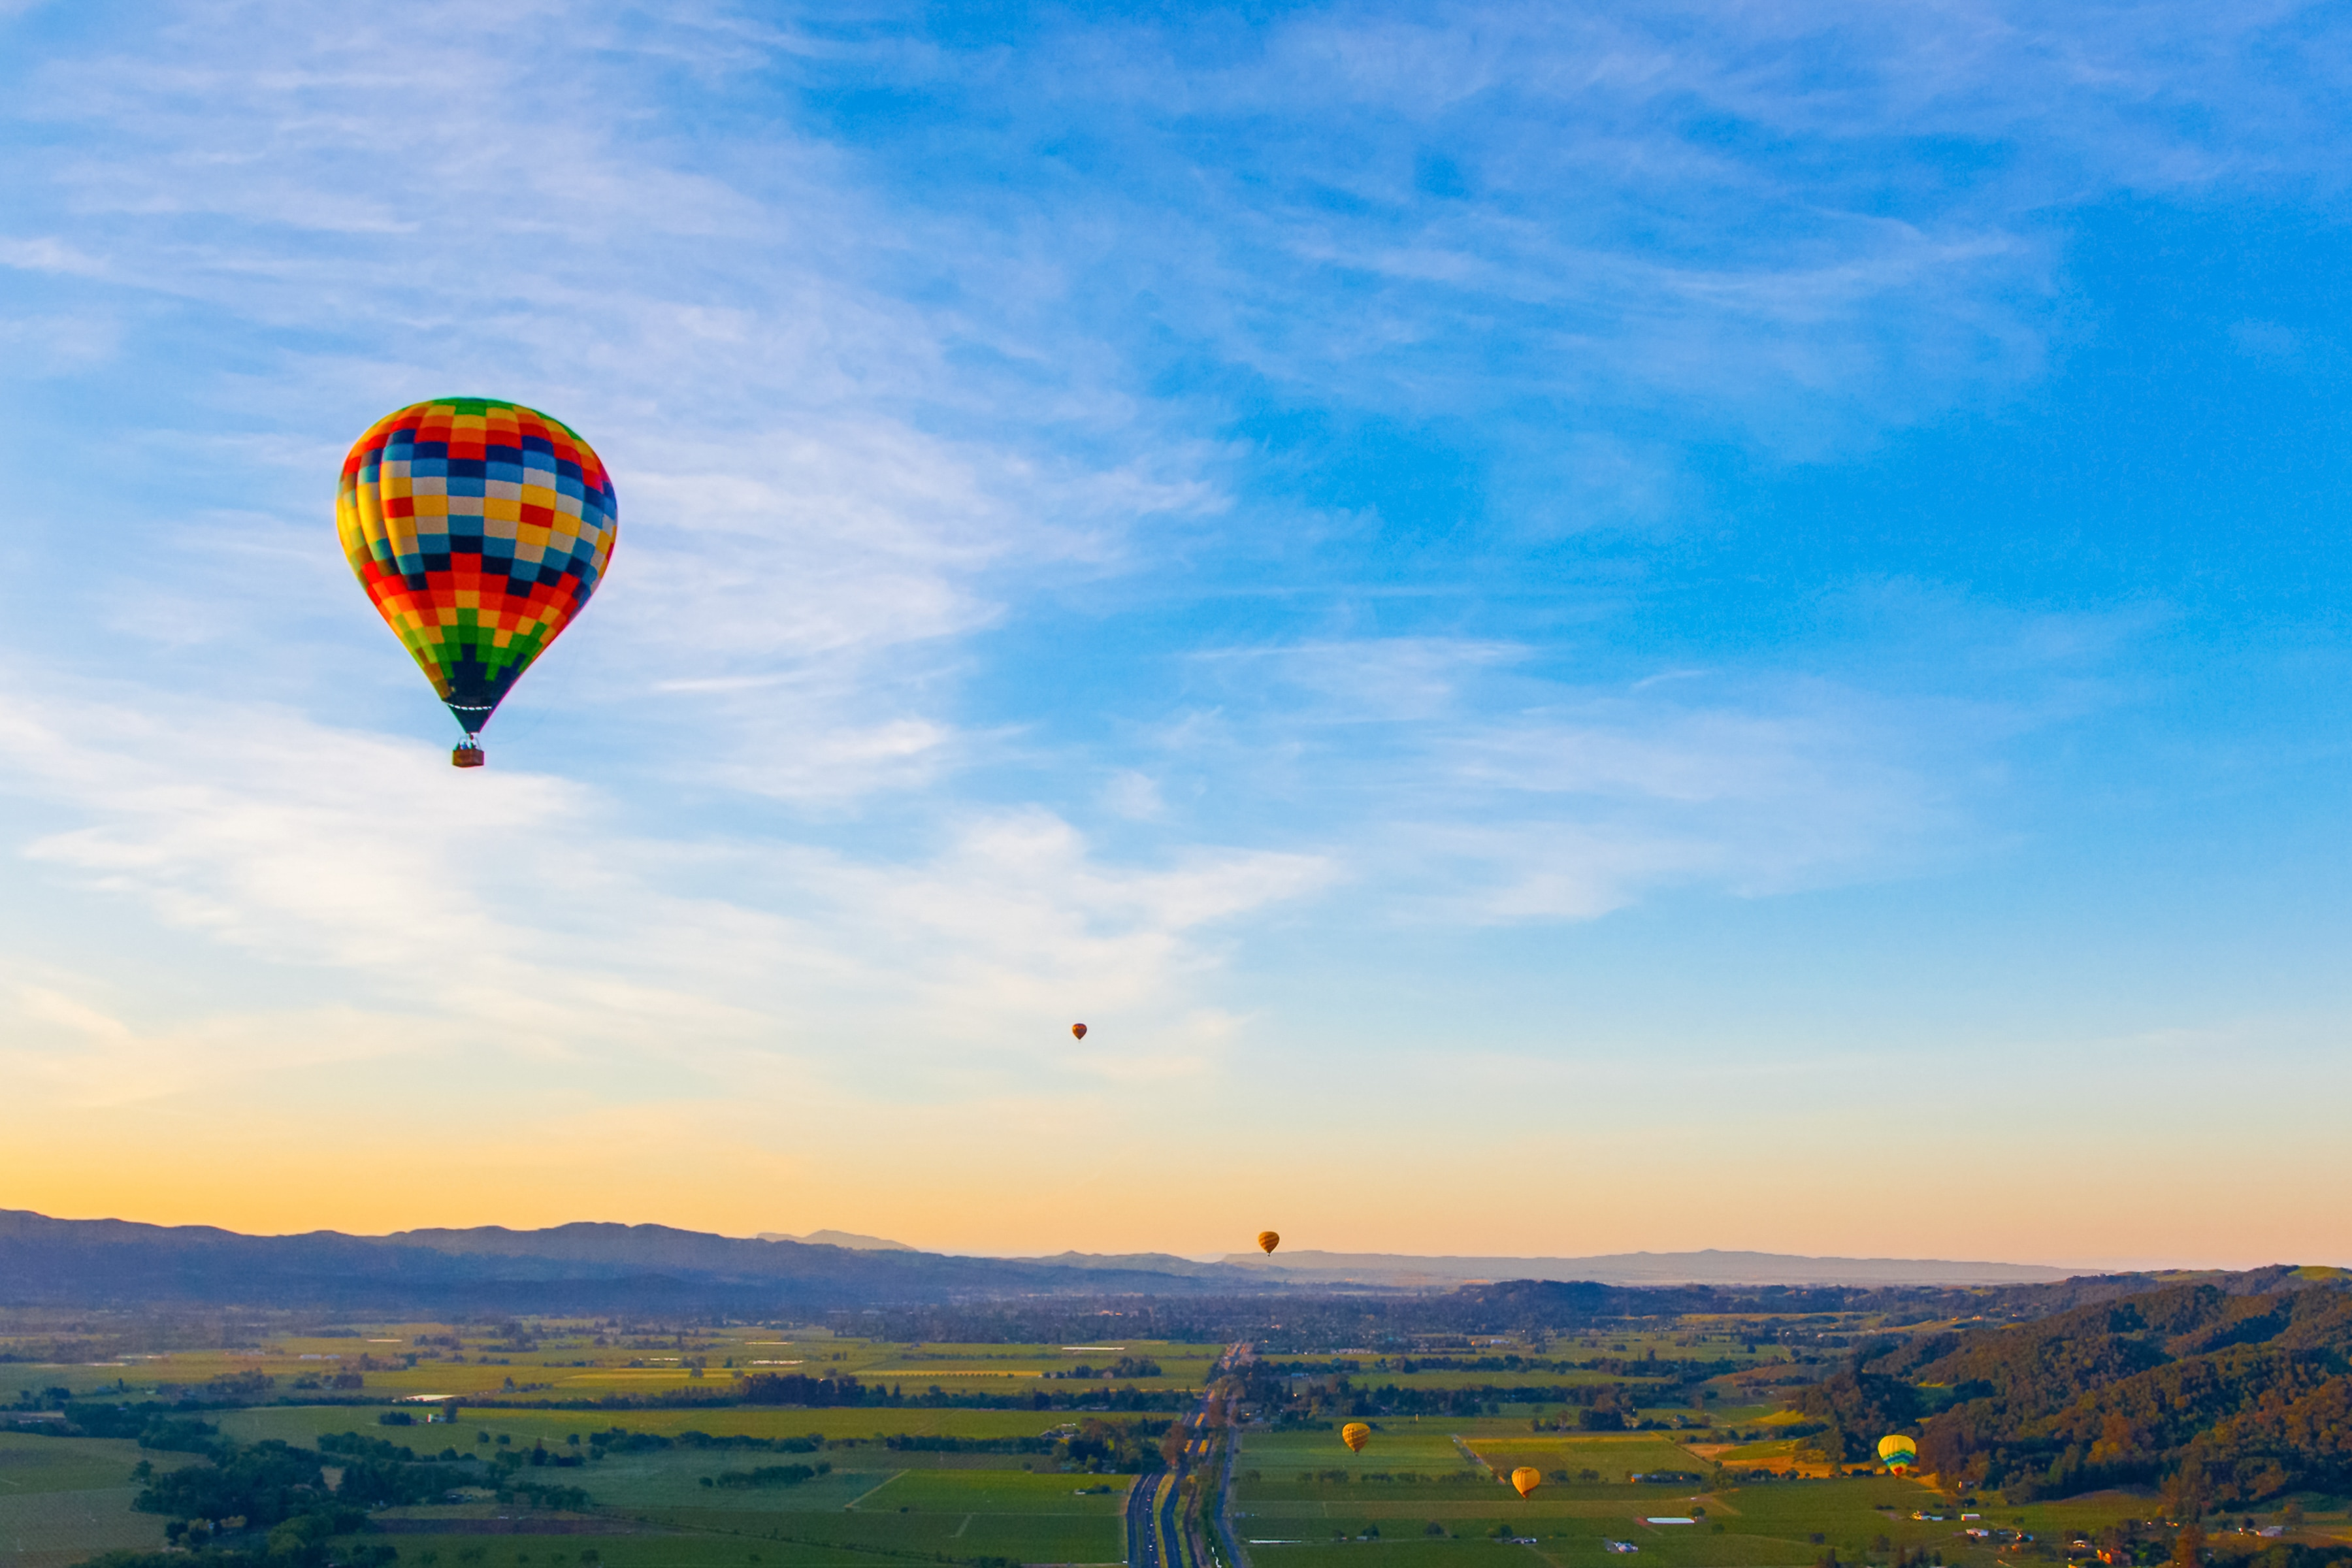 Wine Country Balloons invites you to take in the Santa Rosa sights from on high in 6.7 miles.